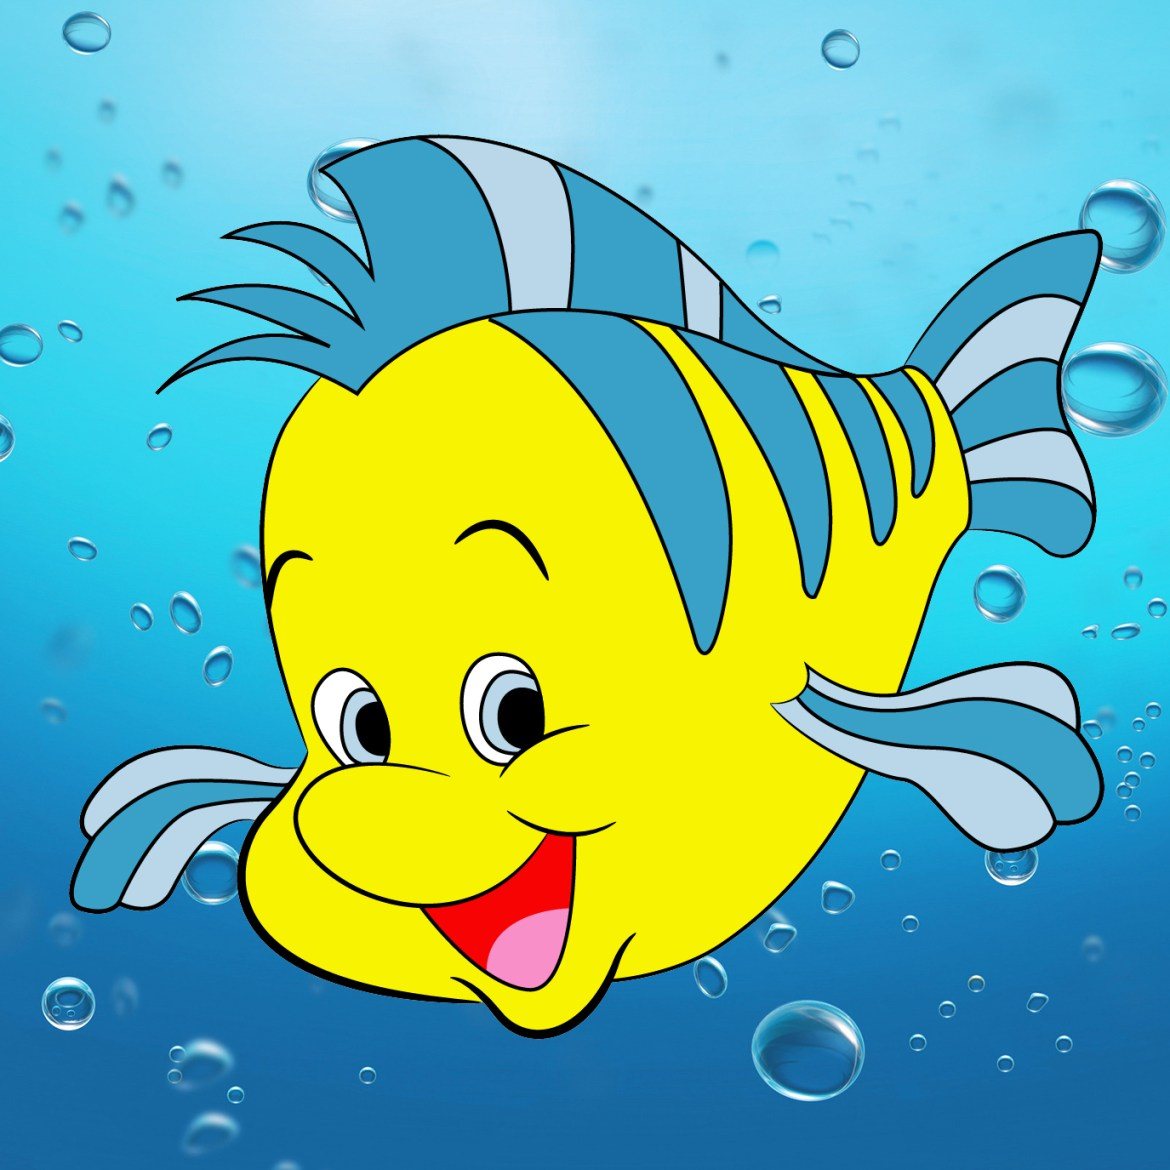 How To Draw Flounder From The Little Mermaid - Draw Central